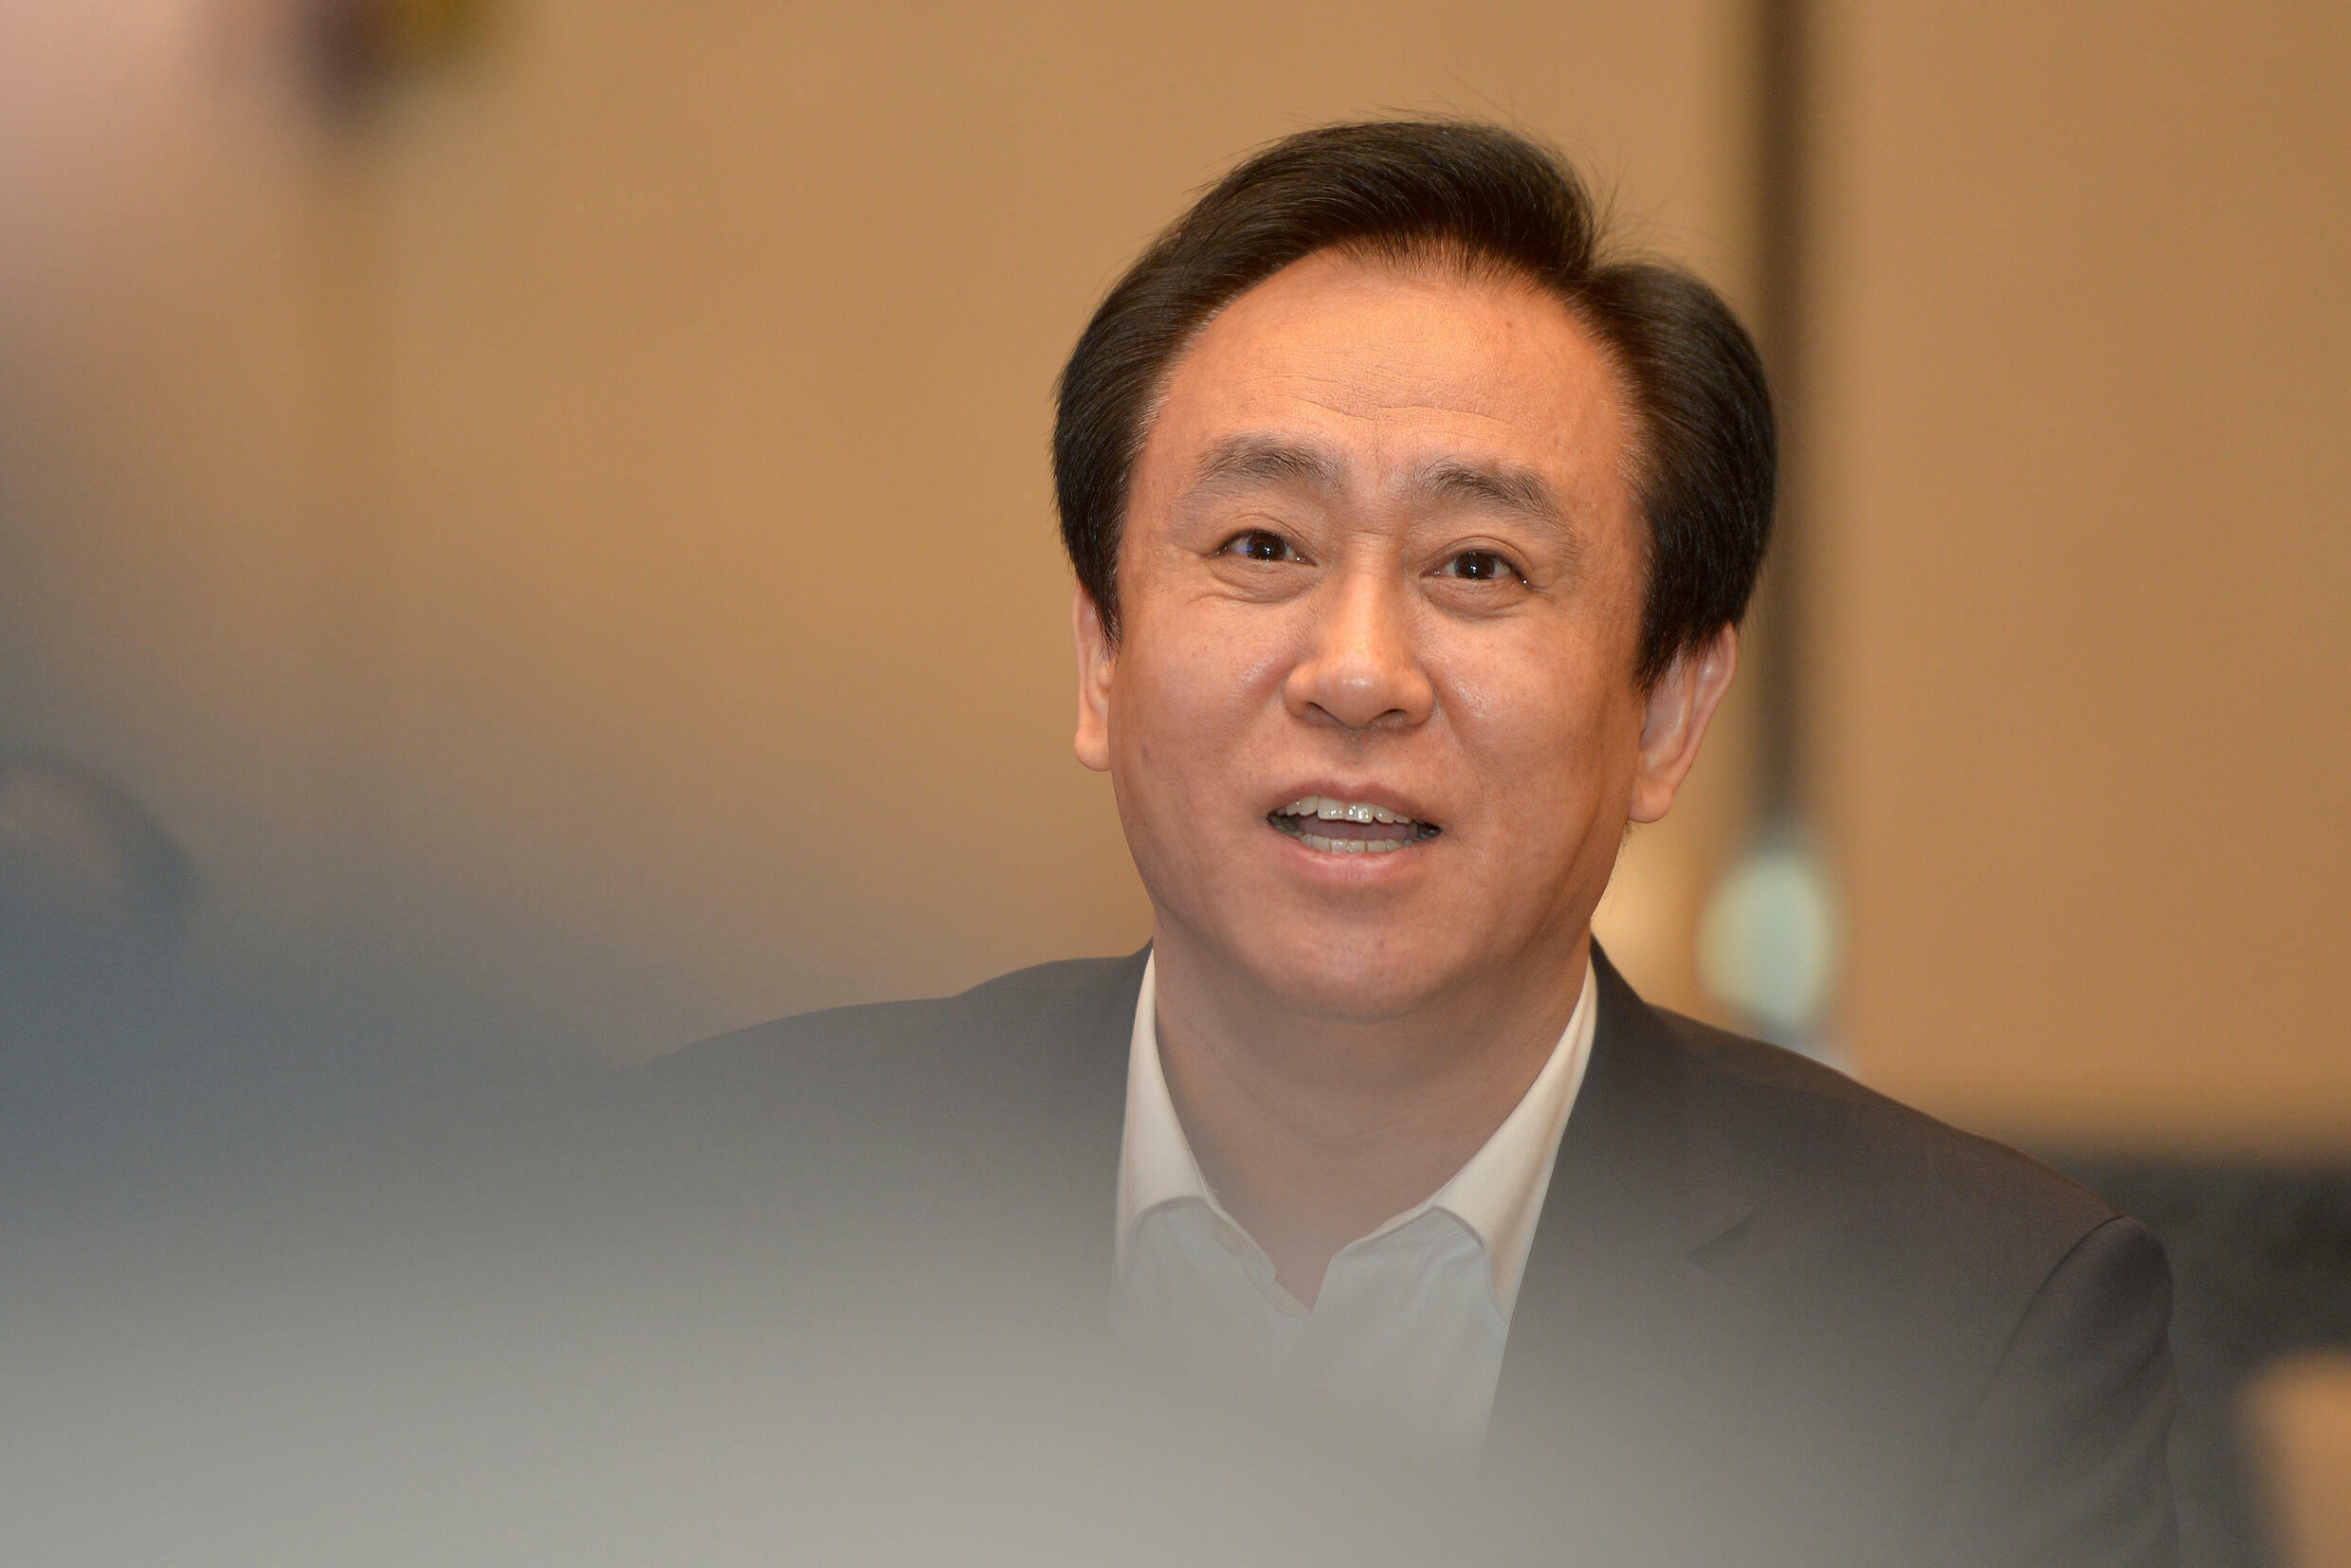 Evergrande boss Xu Jiayin has called on staff to work to deliver properties to investors